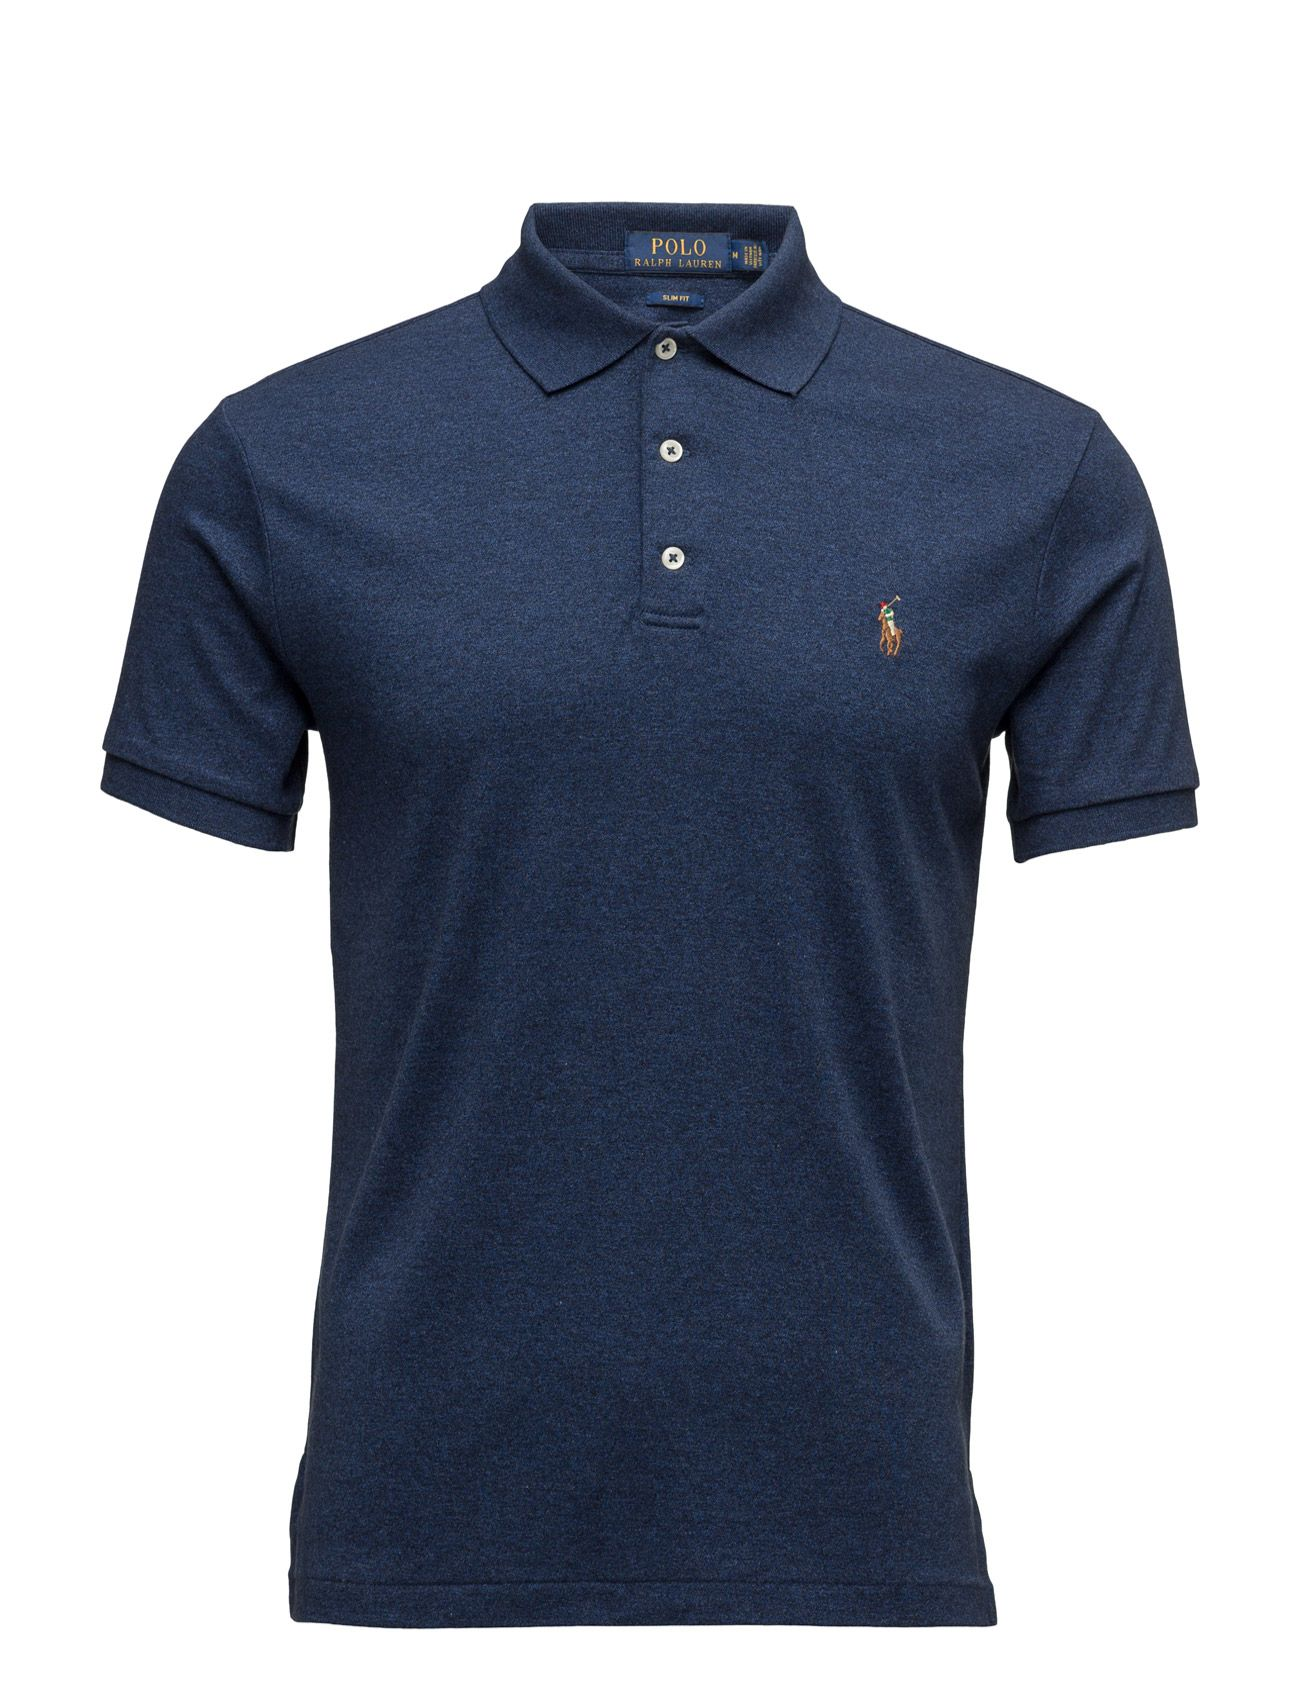 3ceccdd0 polo ralph lauren slim fit soft-touch polo monroe blue heather men tops shirts  short-sleeved,polo ralph lauren outlet,New Arrival, ralph lauren swim where  ...